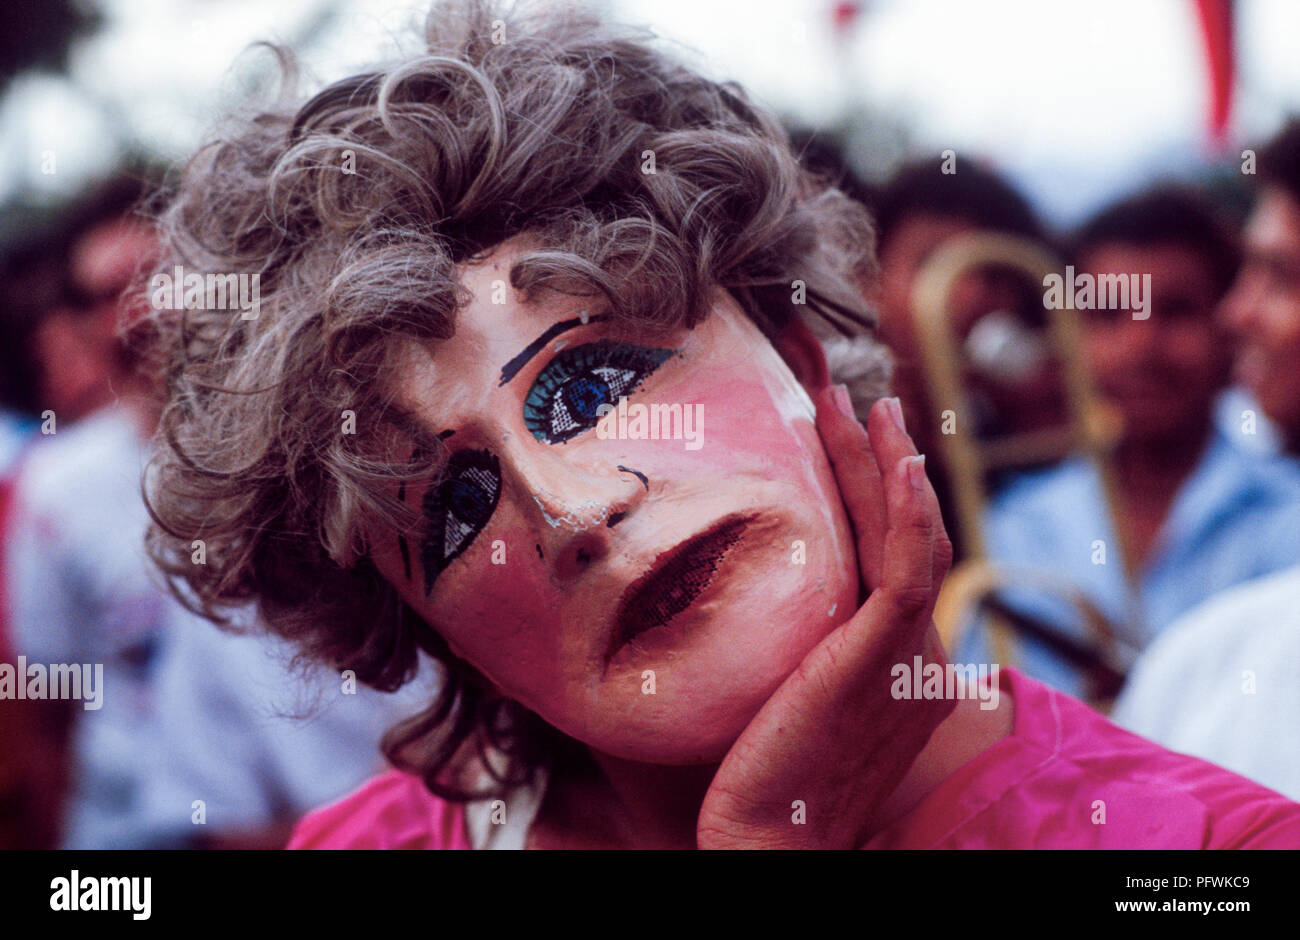 Managua, Nicaragua, elections, Feb 1990; a woman wearing a traditional Nicaraguan mask made of papier-mashe. - Stock Image